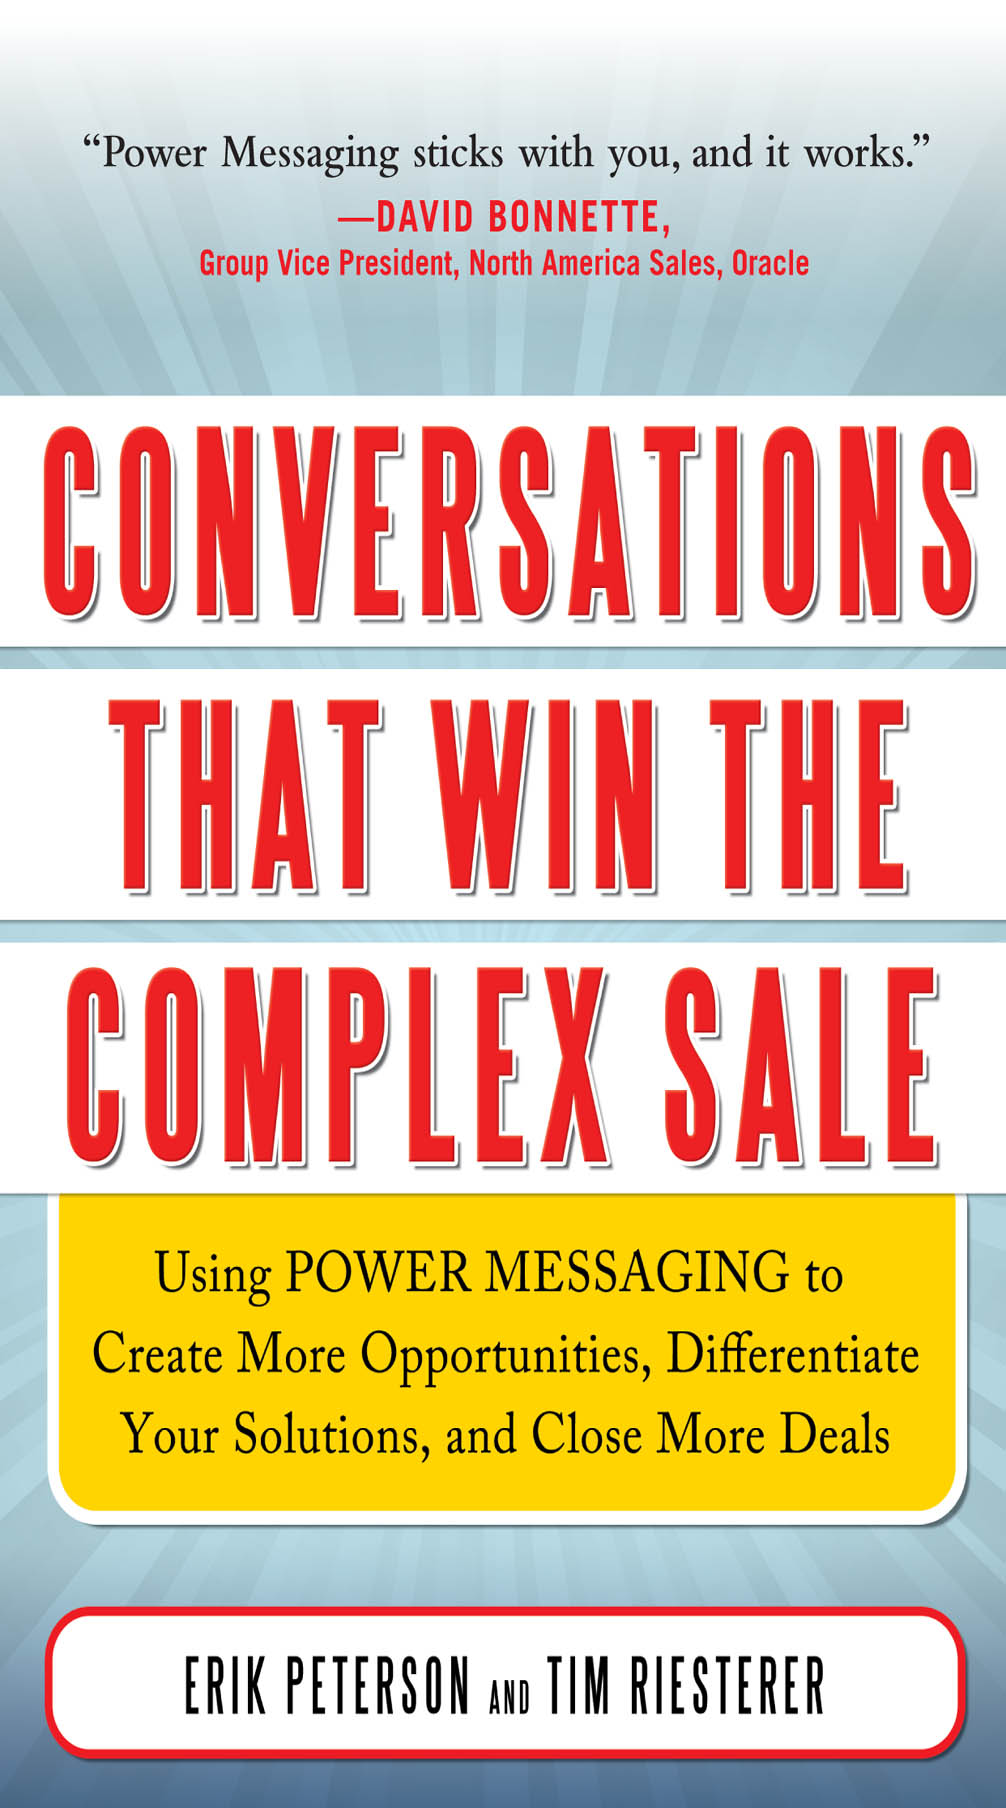 Download Ebook Conversations That Win the Complex Sale:  Using Power Messaging to Create More Opportunities, Differentiate your Solutions, and Close More Deals by Erik Peterson Pdf